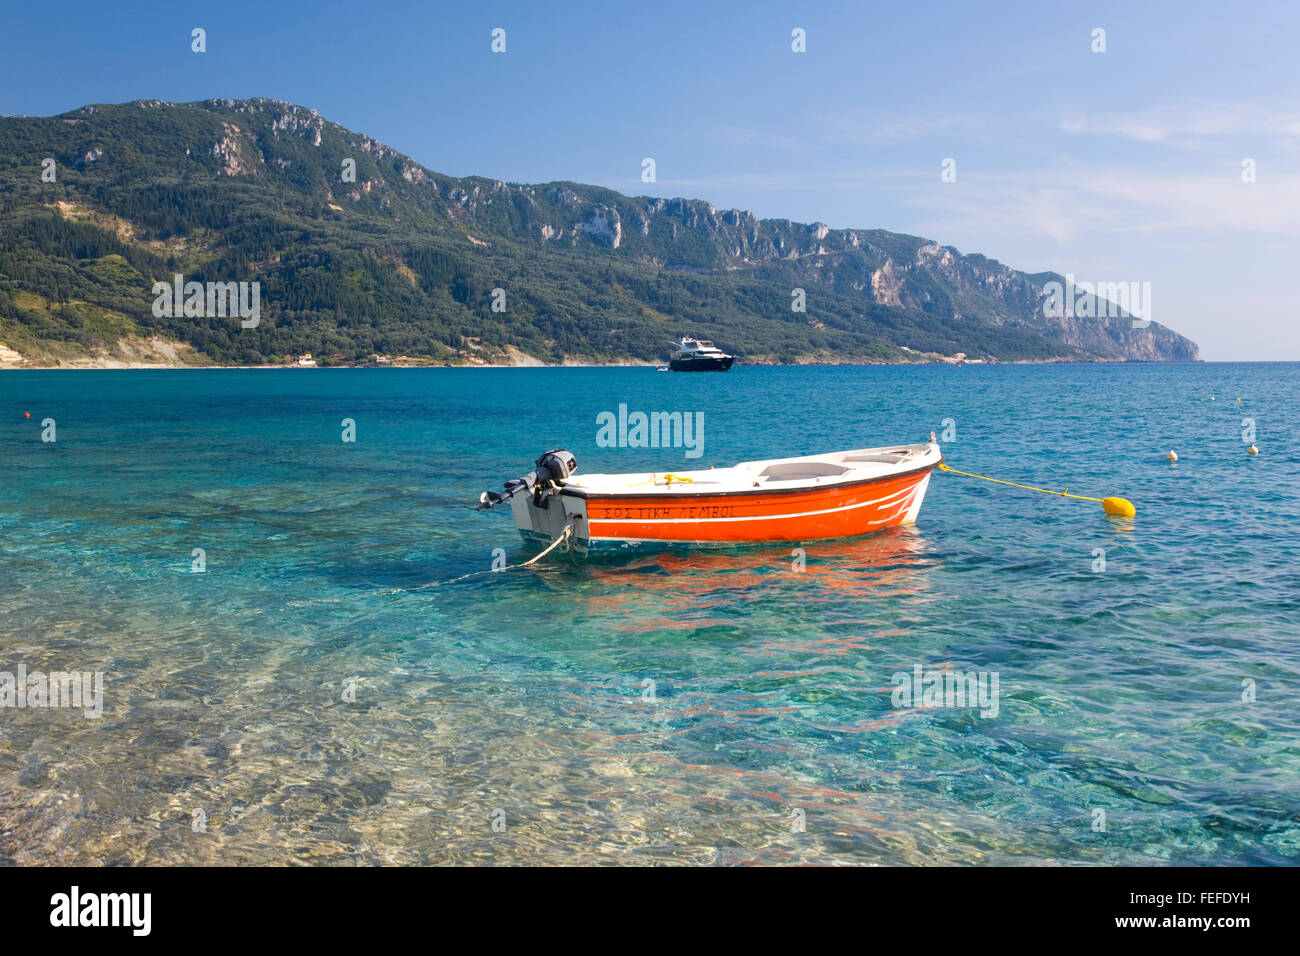 Agios Georgios, Corfu, Ionian Islands, Greece. Colourful boat moored in clear turquoise water, Cape Taxiarhis beyond. - Stock Image